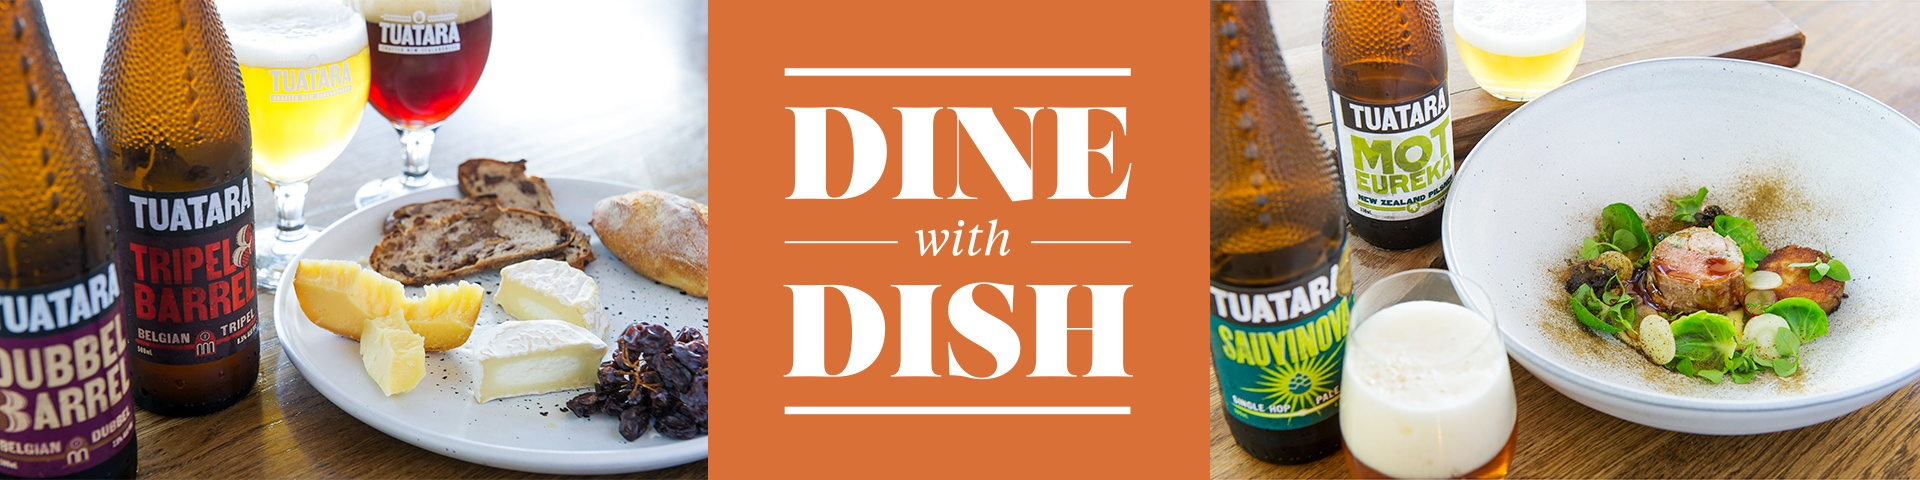 Dine with Dish